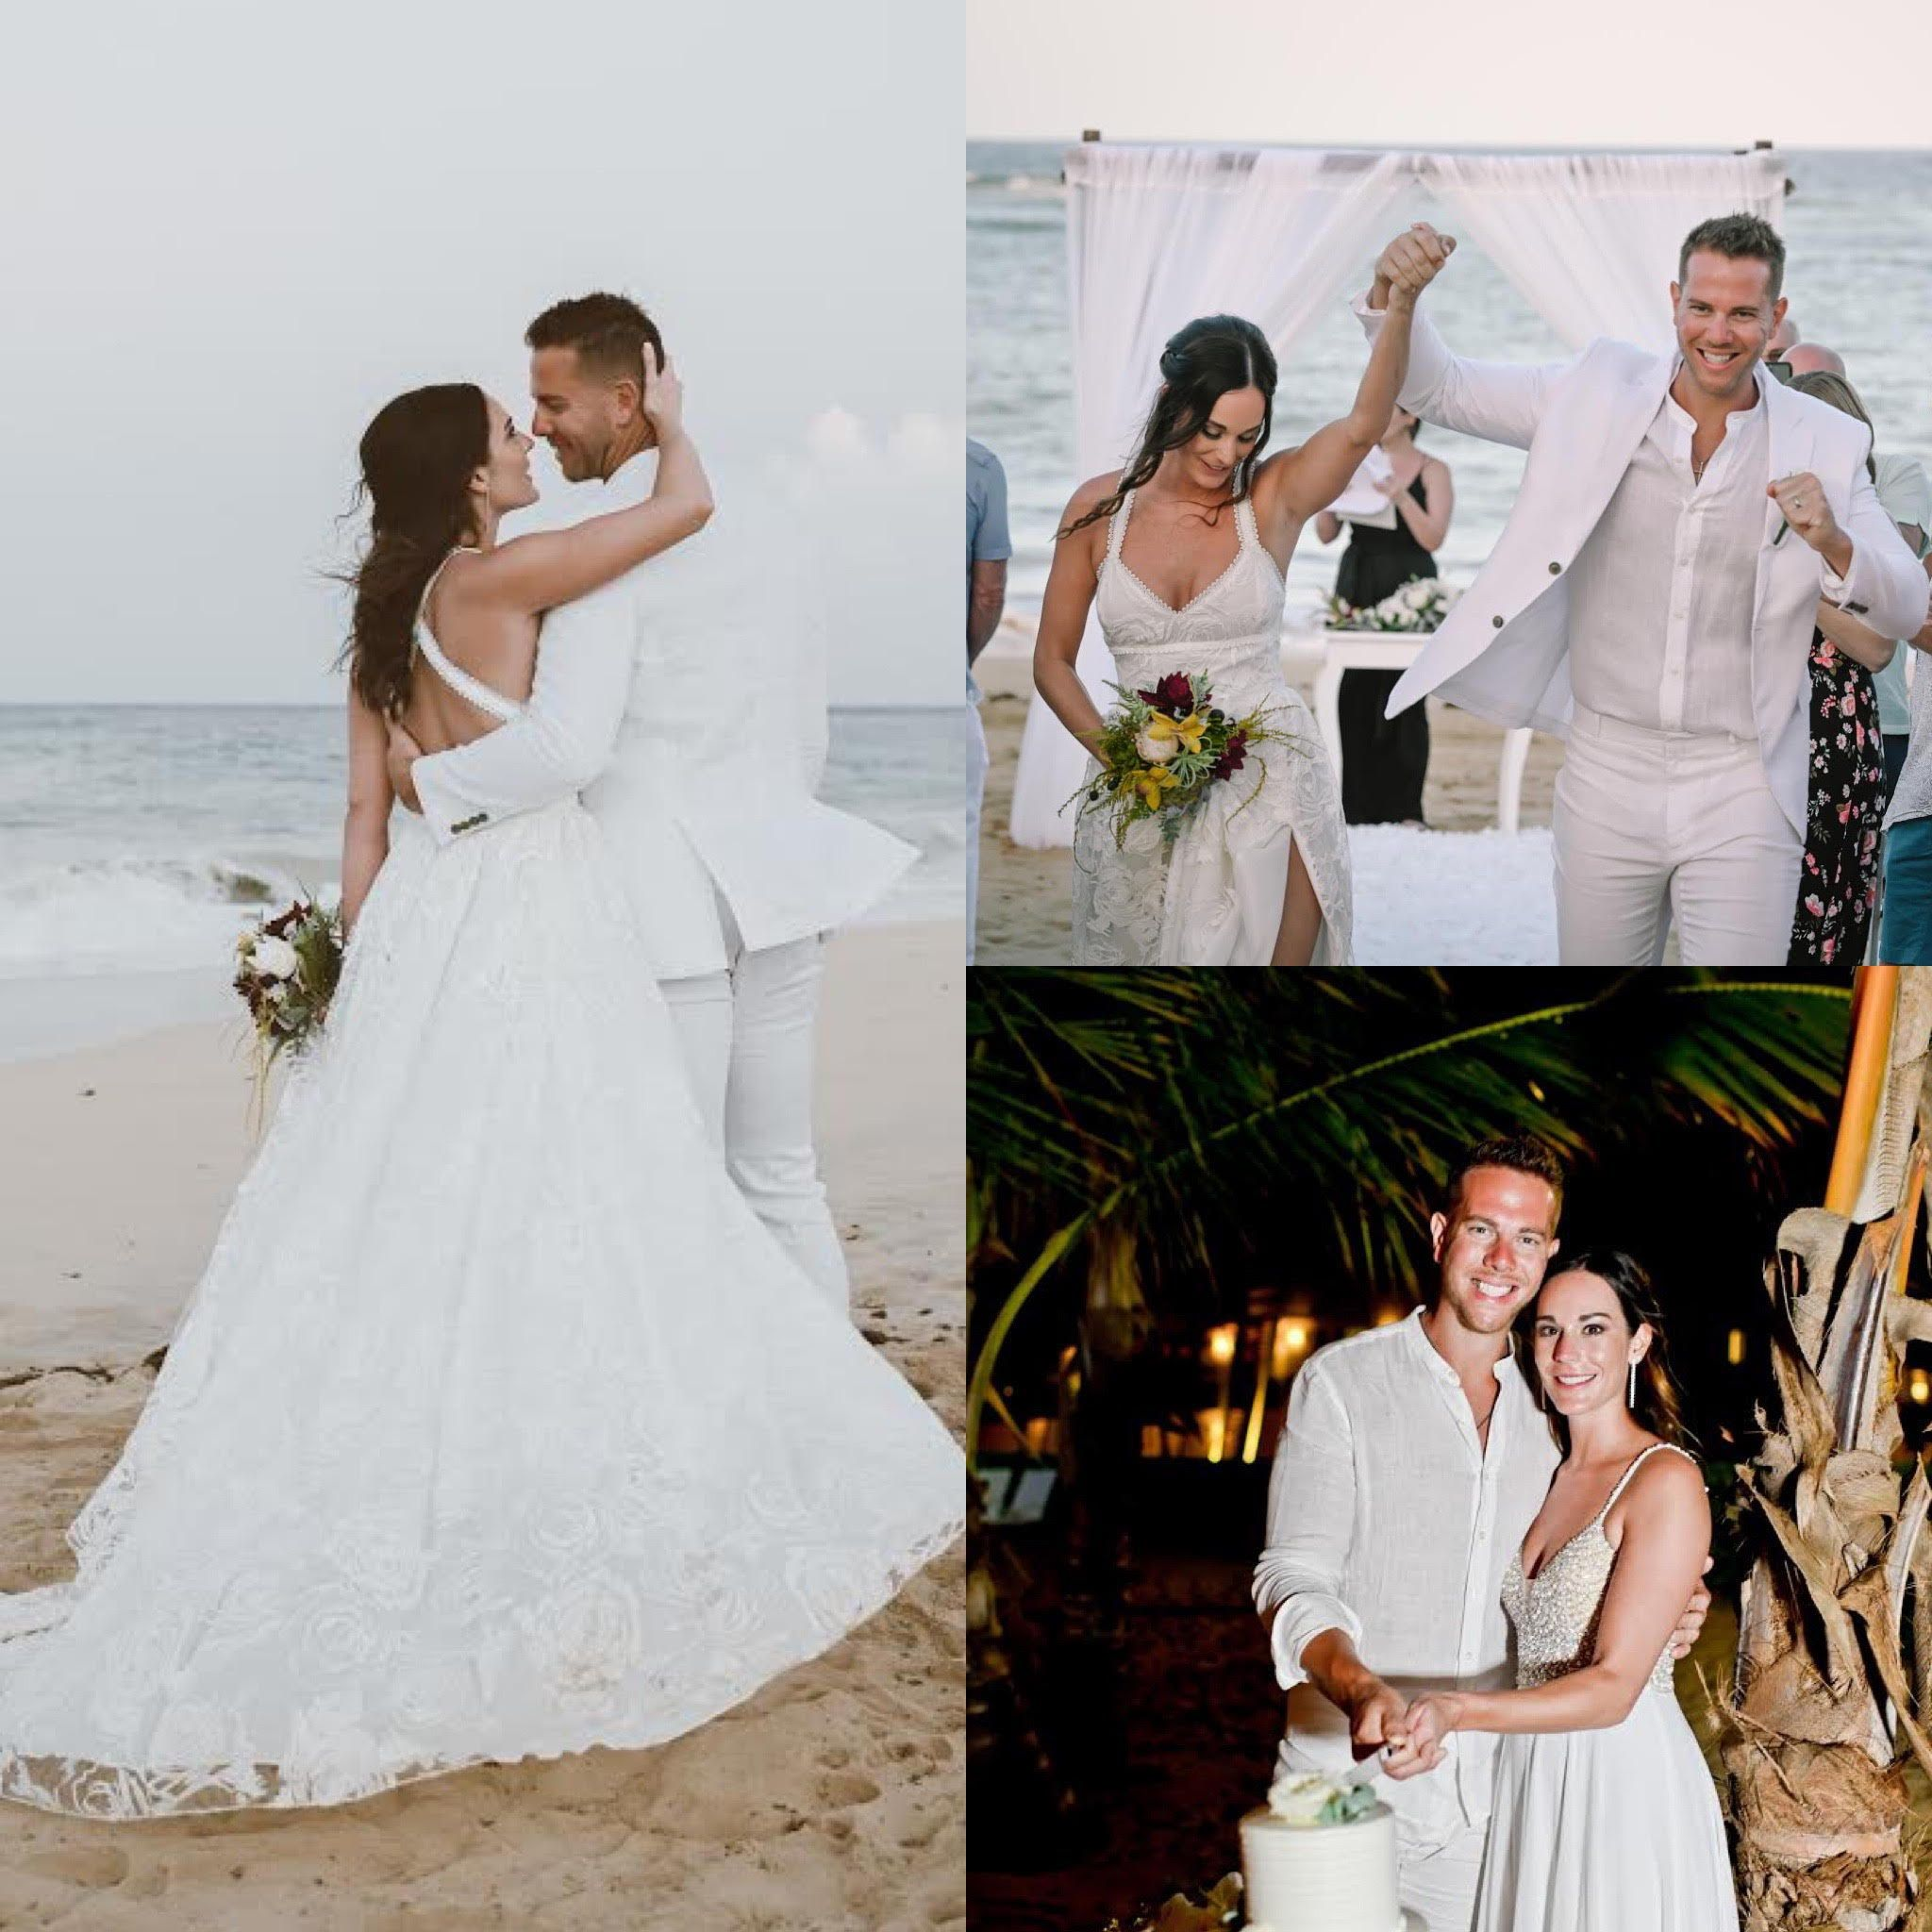 Logan And Nick's Wedding At NOW Onyx